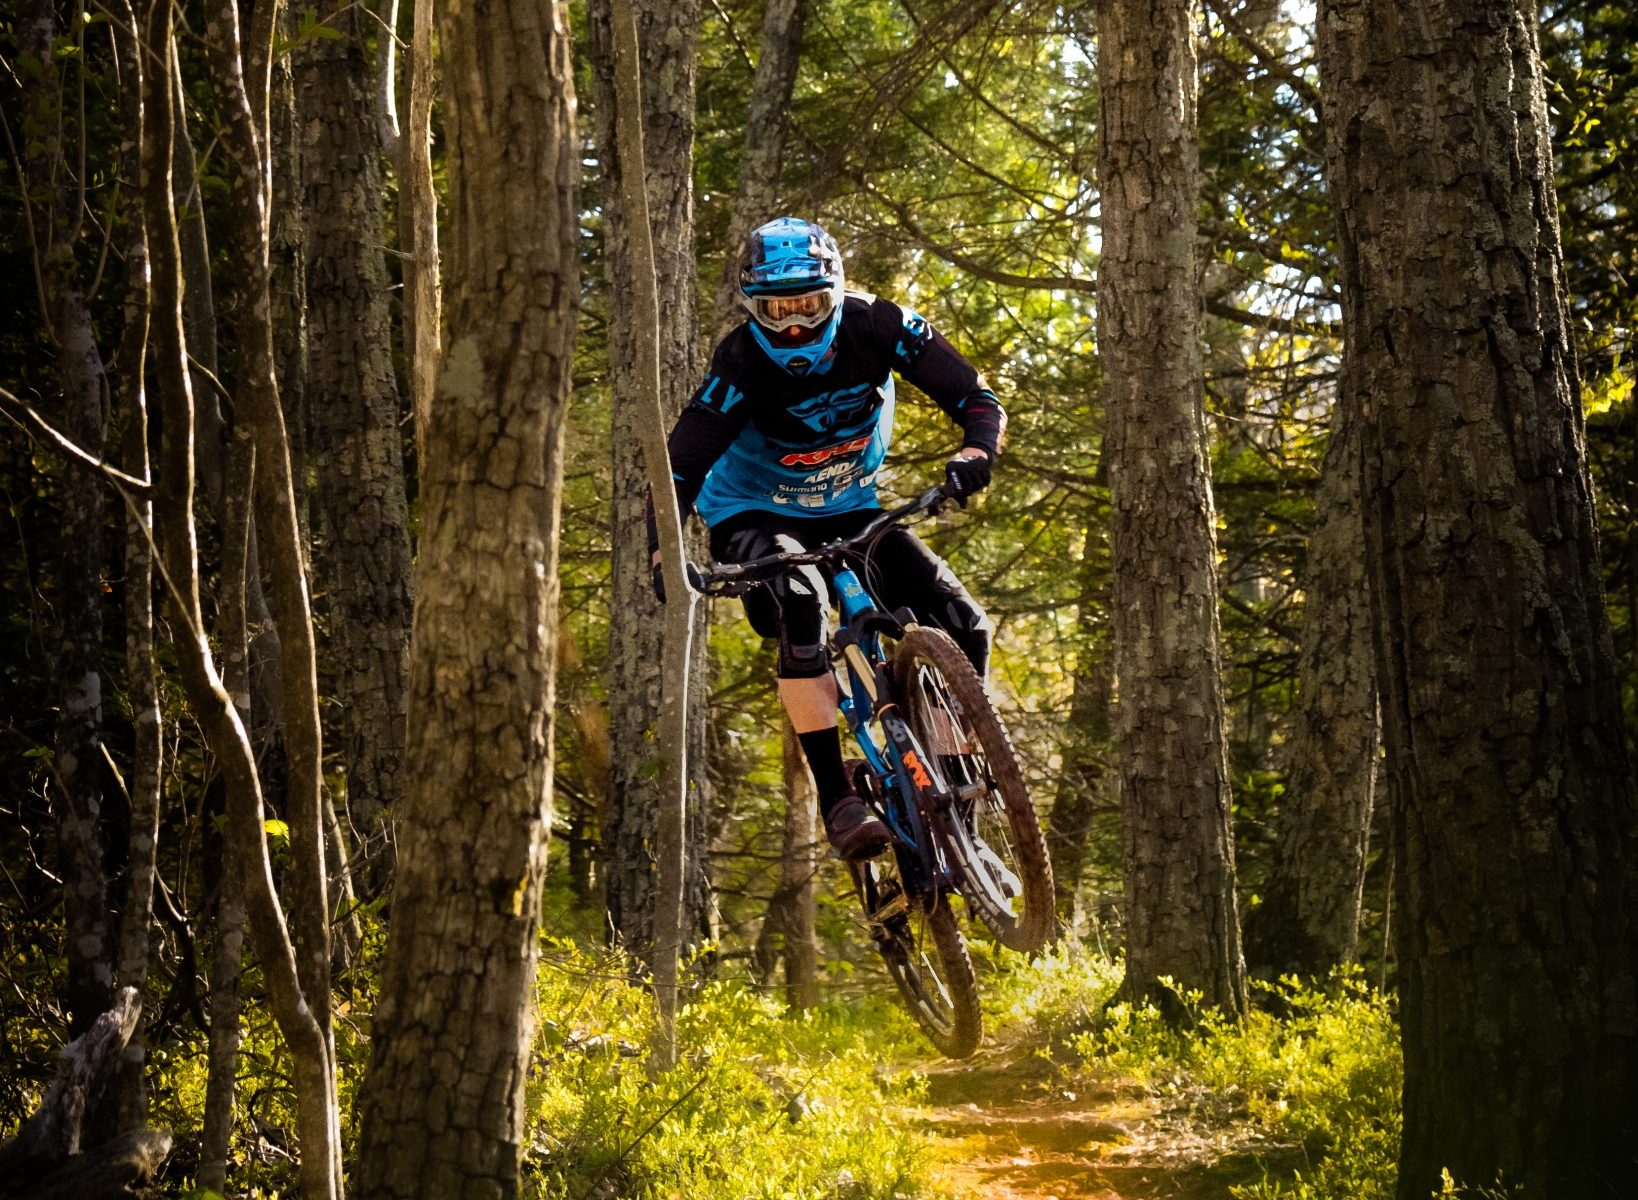 KHS pro MTB team rider Seamus Powell riding and jumping his KHS 7500 bike in upstate New York.